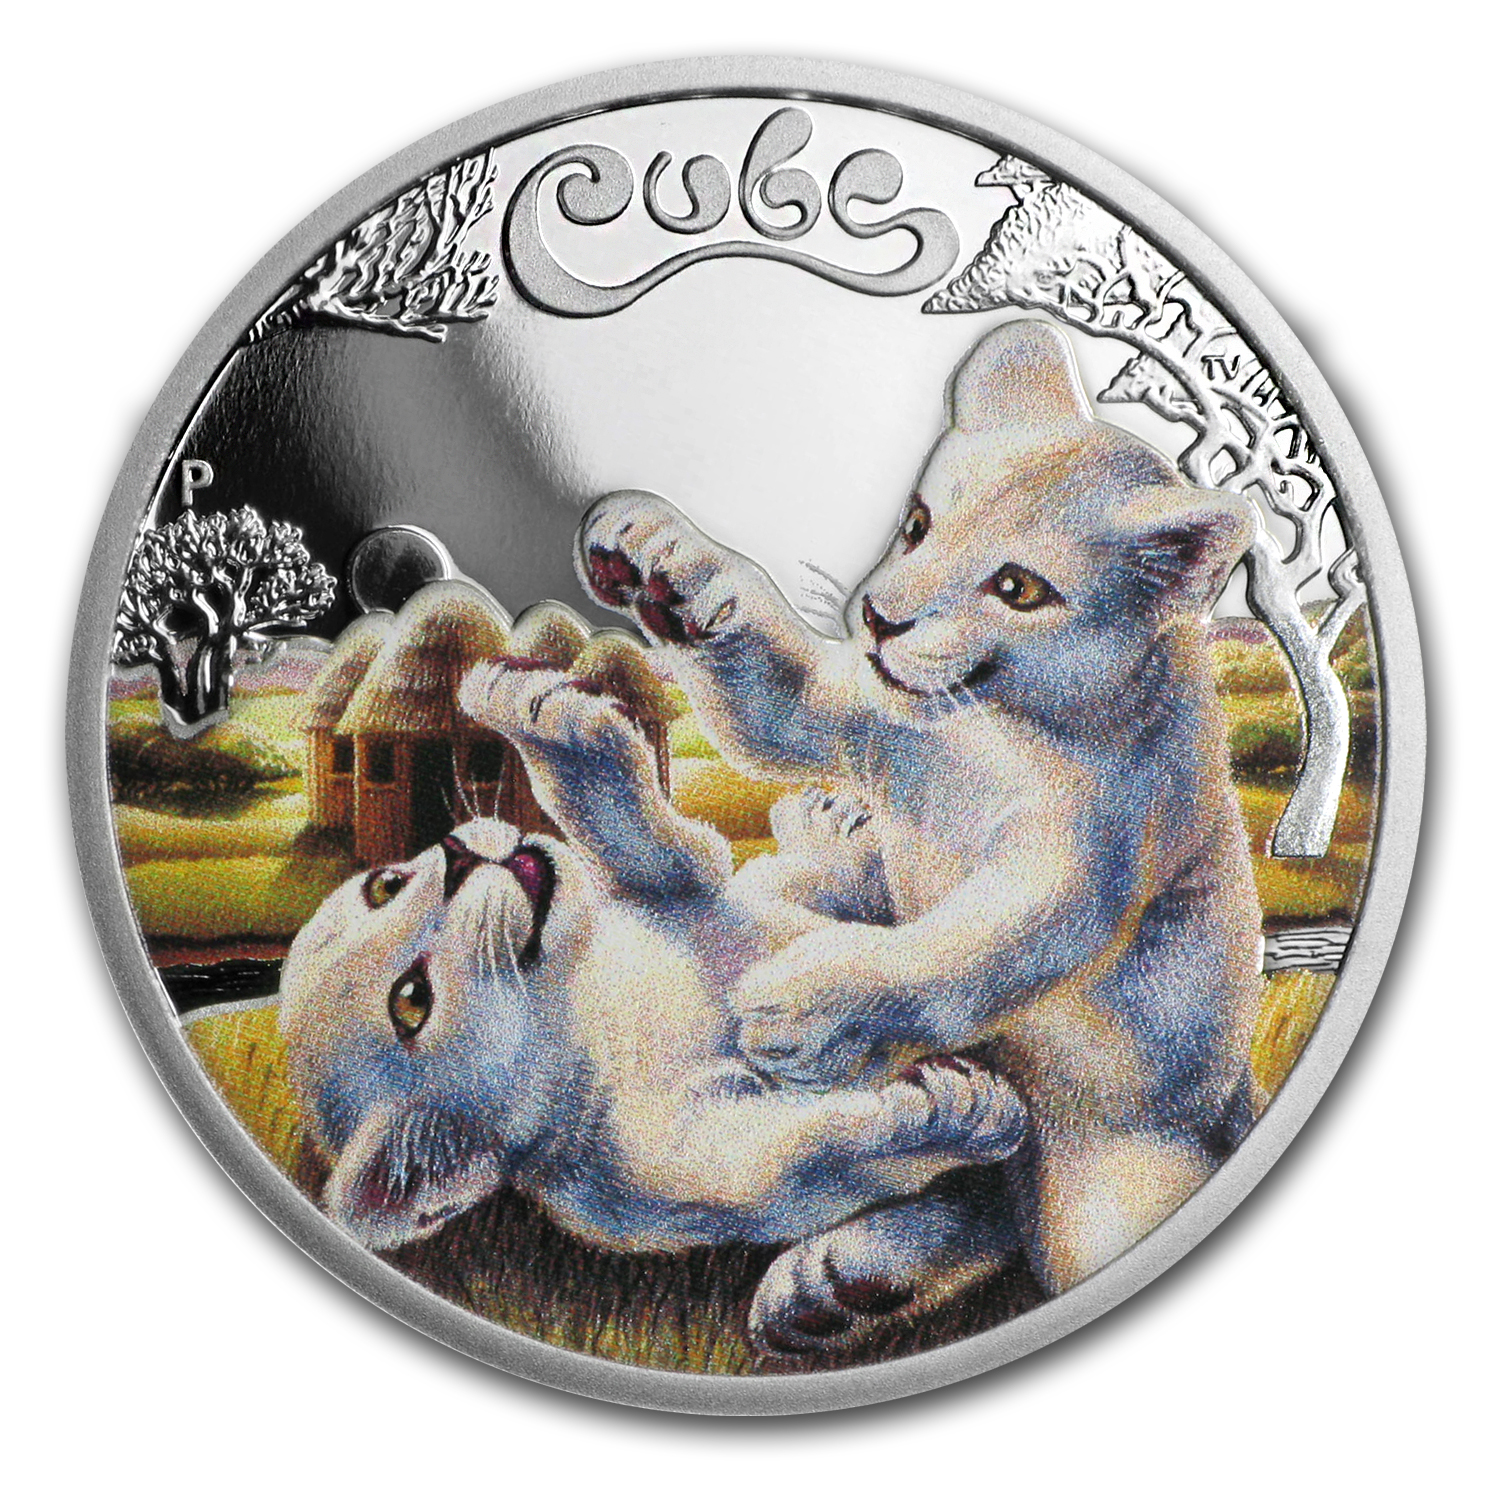 2016 Tuvalu 1/2 oz Silver Proof White Lion Cubs